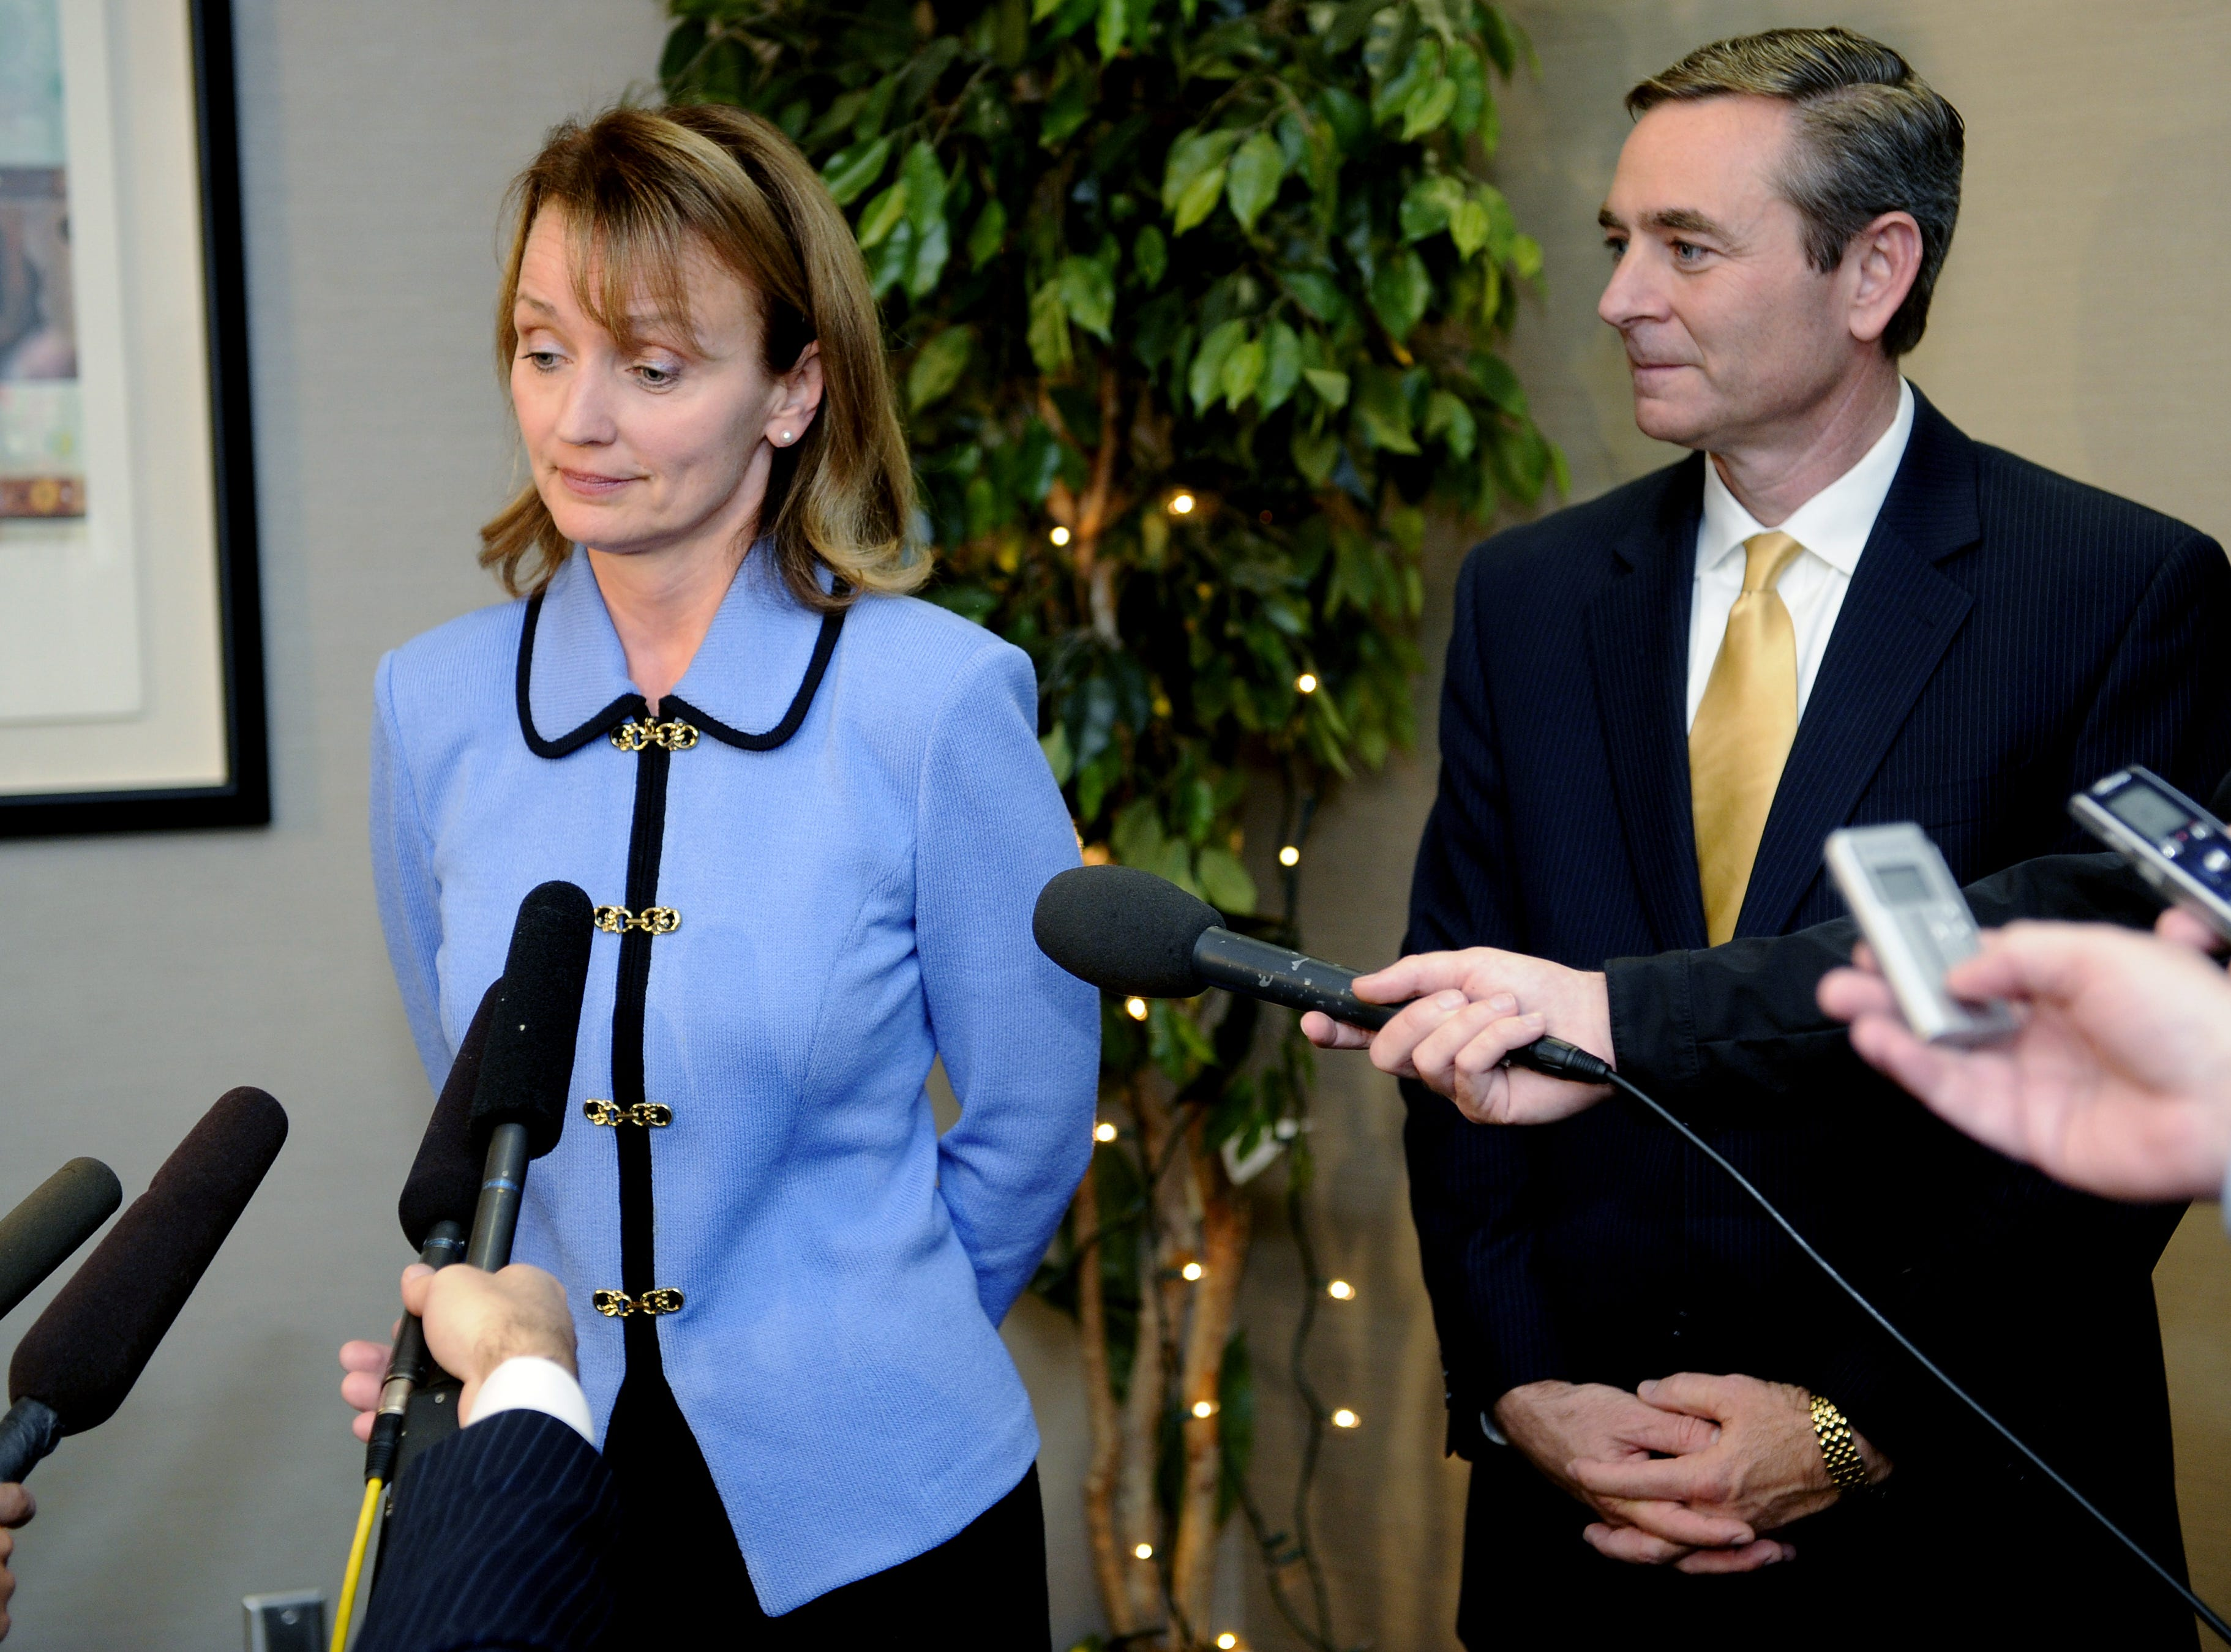 Rep. Beth Harwell, left, the newly elected House Republican nominee for speaker by the state House Republican caucus, talks with the media with House Republican Caucus Chairman Glen Casada looking on at the AT&T building in Nashville on Nov. 18, 2010.